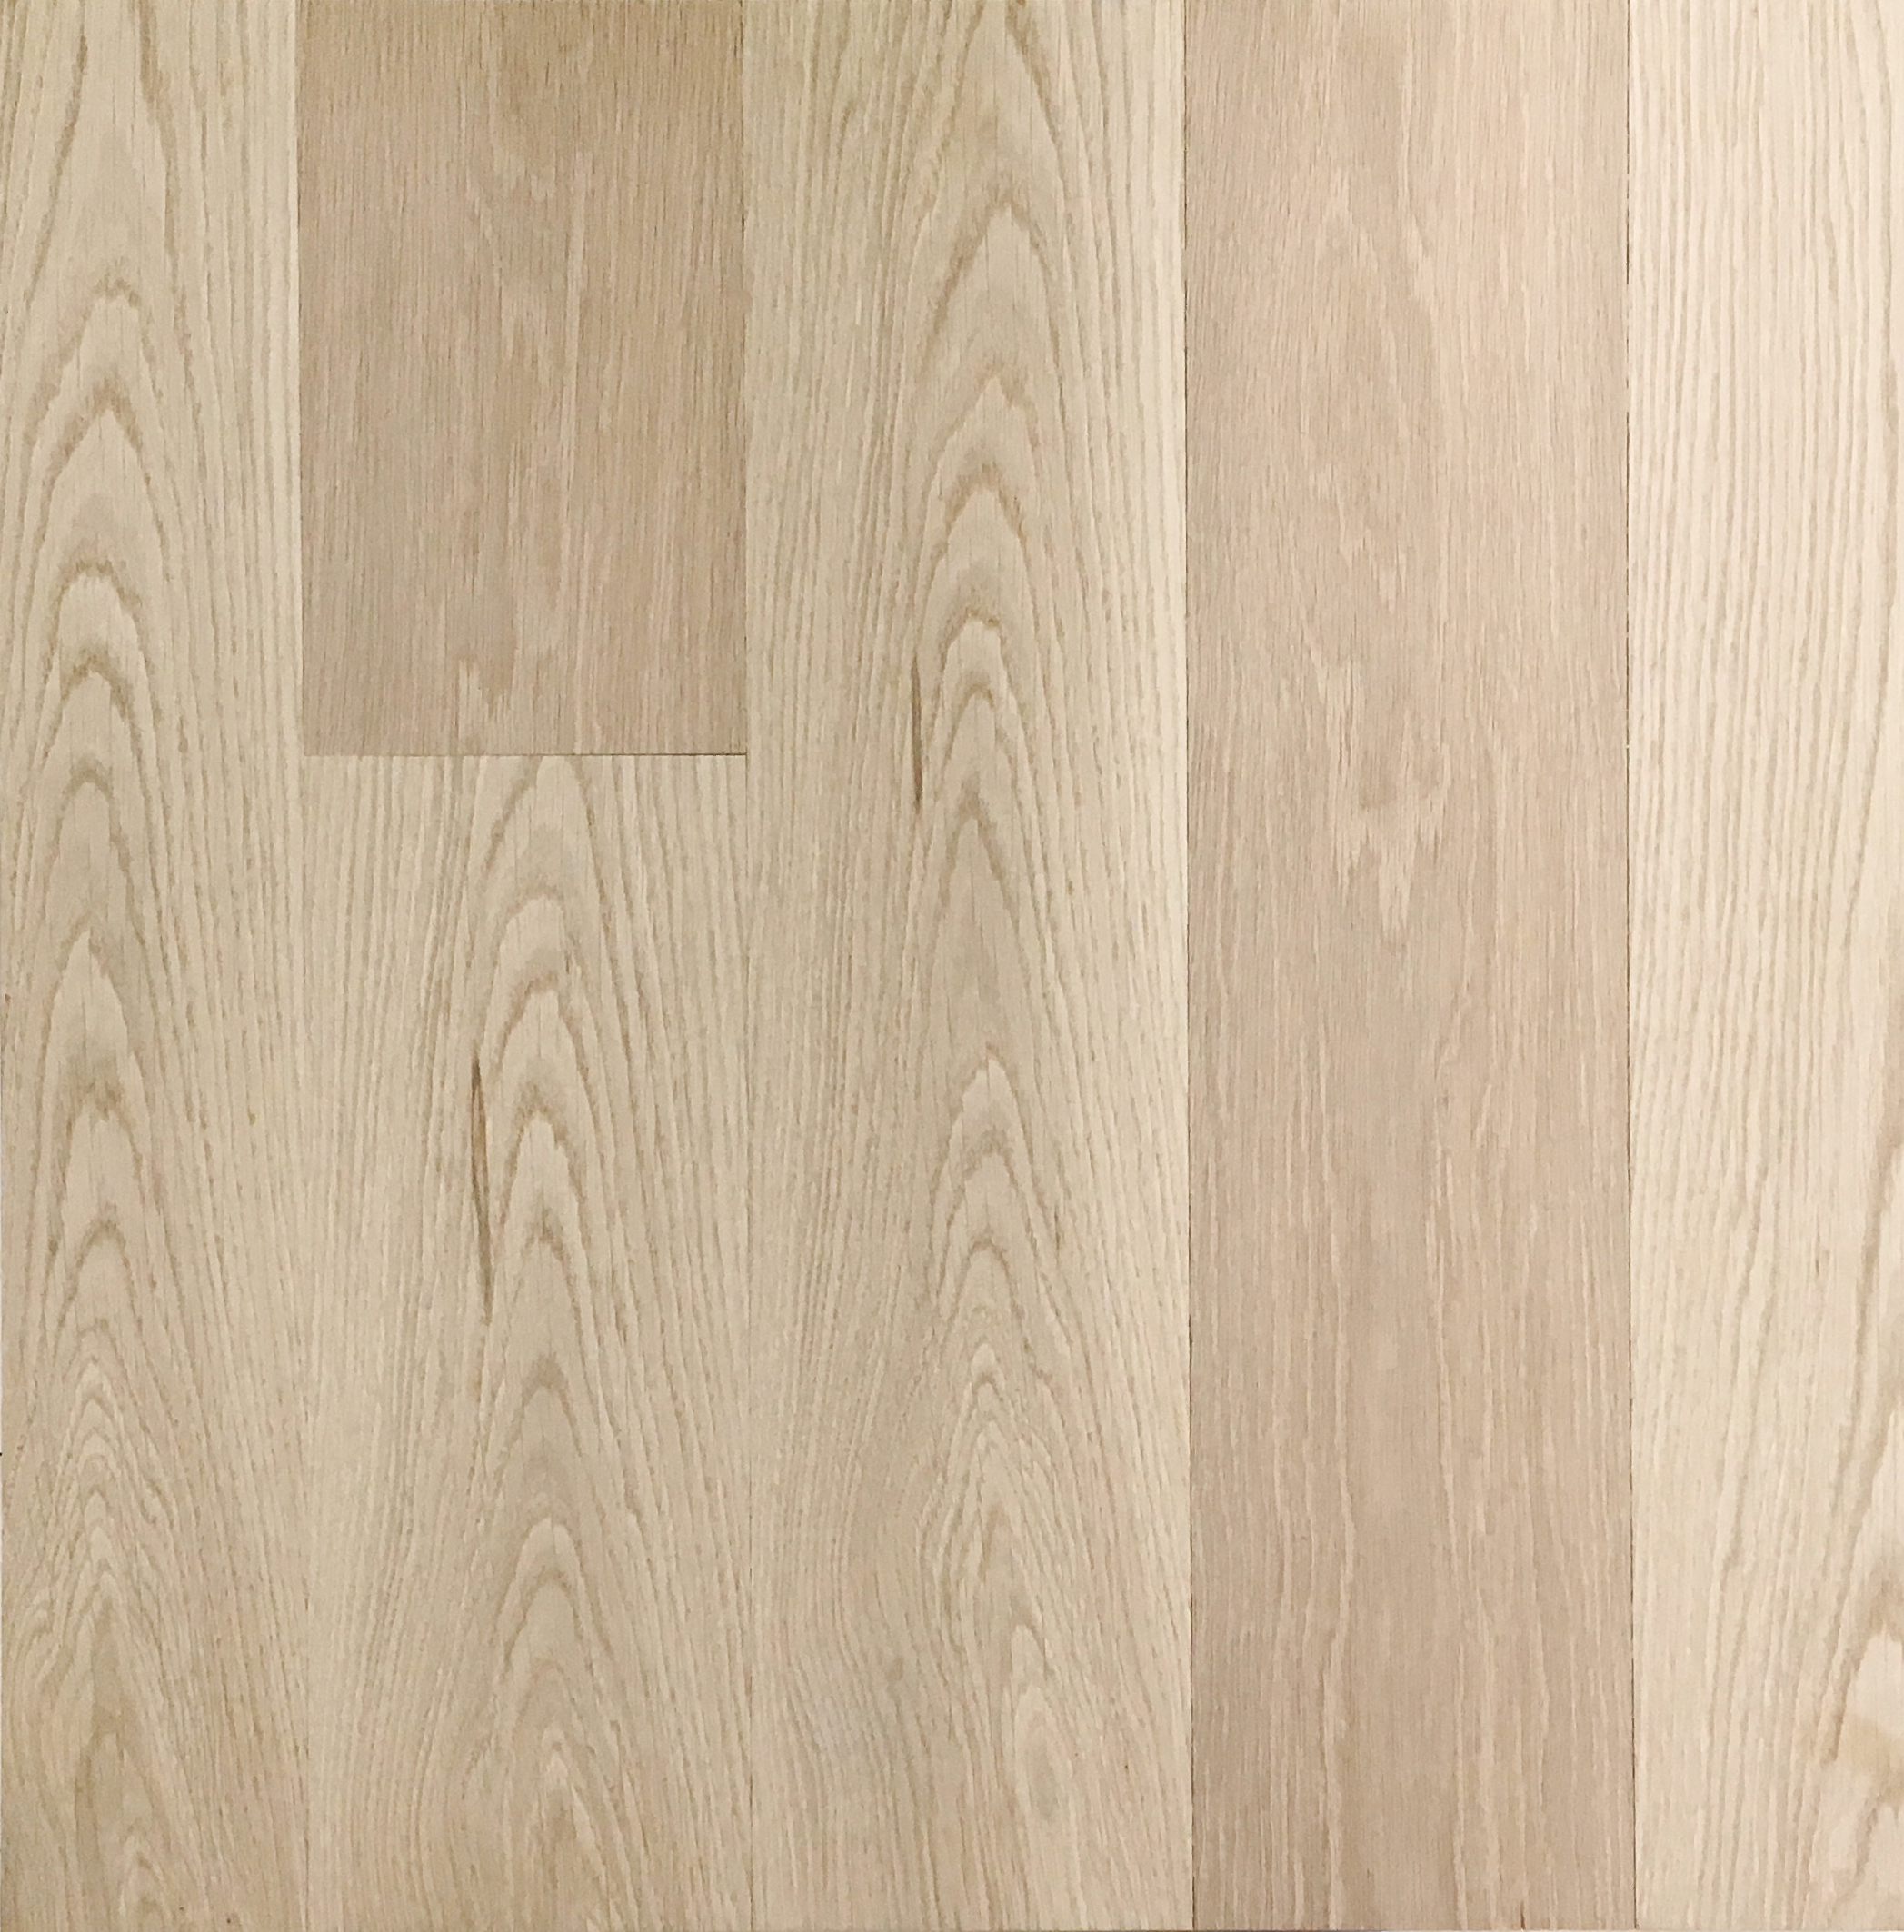 Pioneer Millworks sustainable wood--White Oak--Fresh-sawn yet sustainably harvested